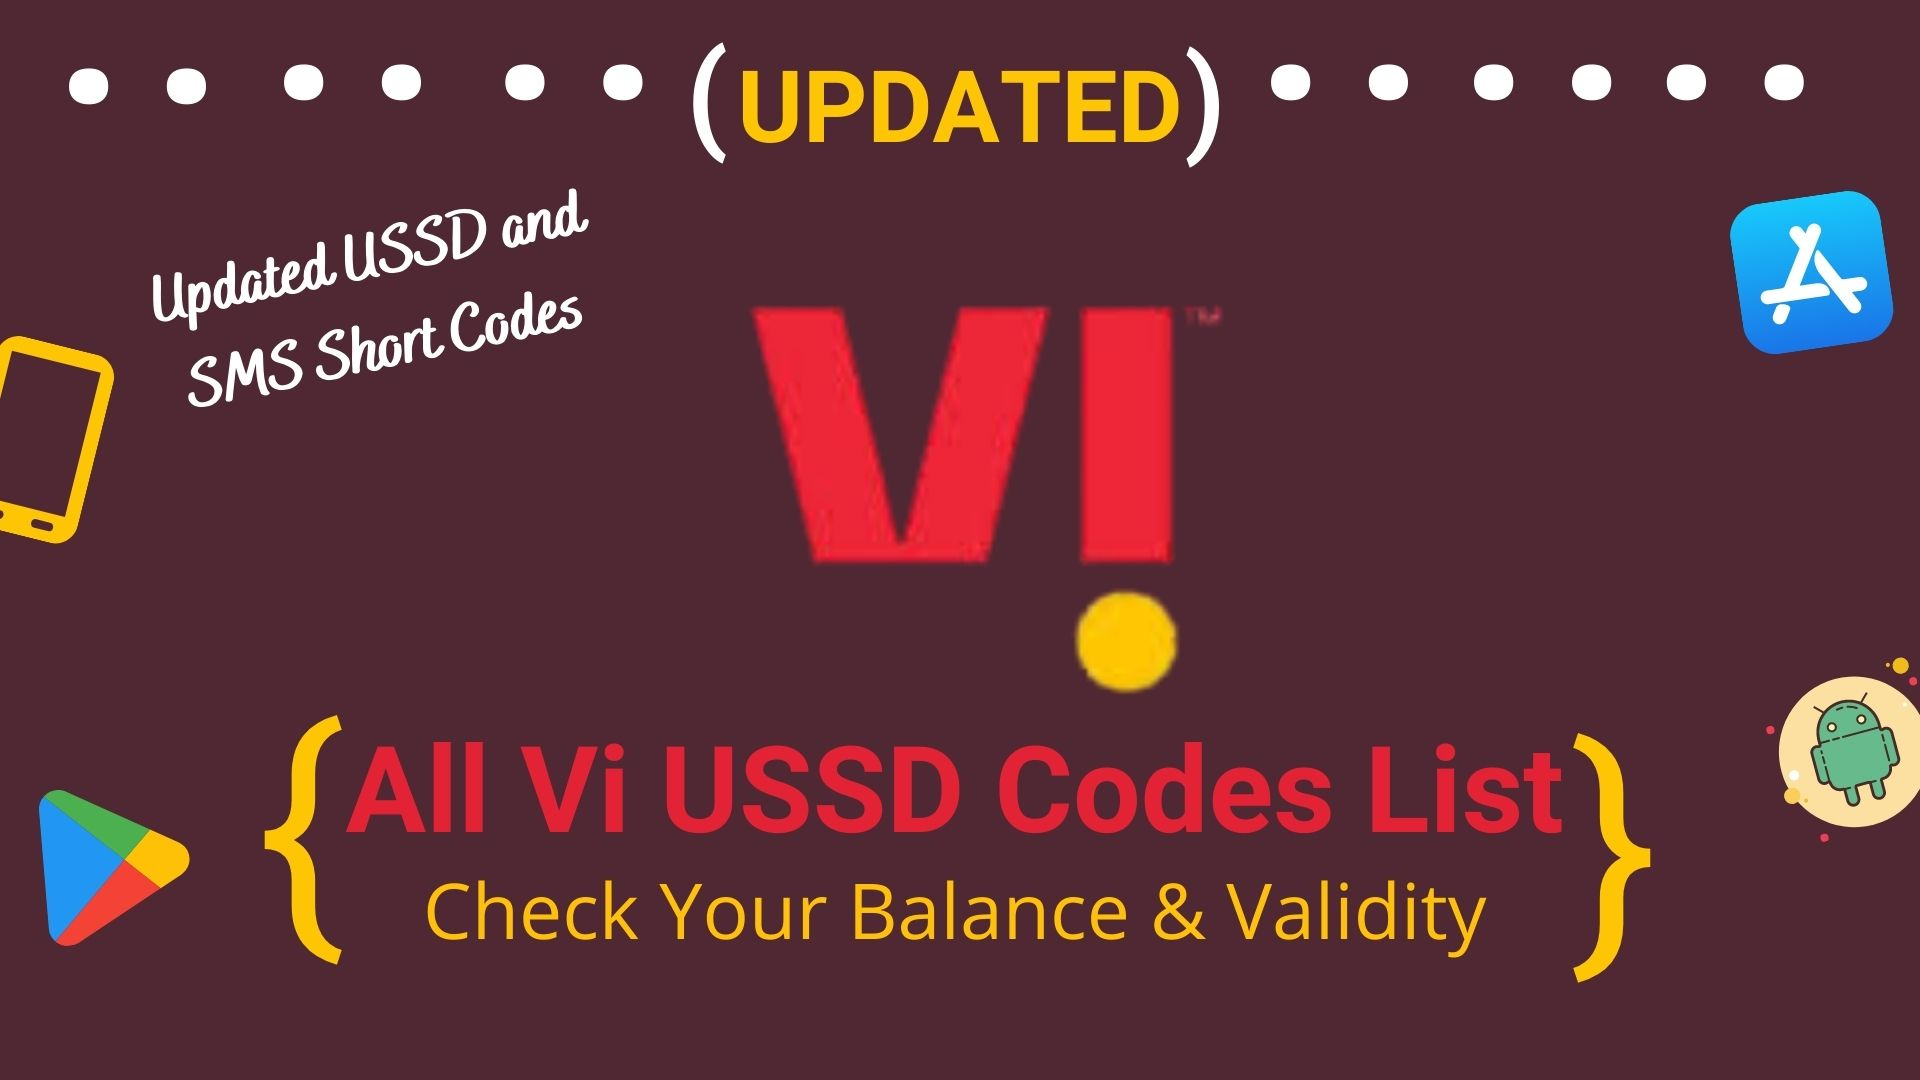 All Vi USSD Codes List